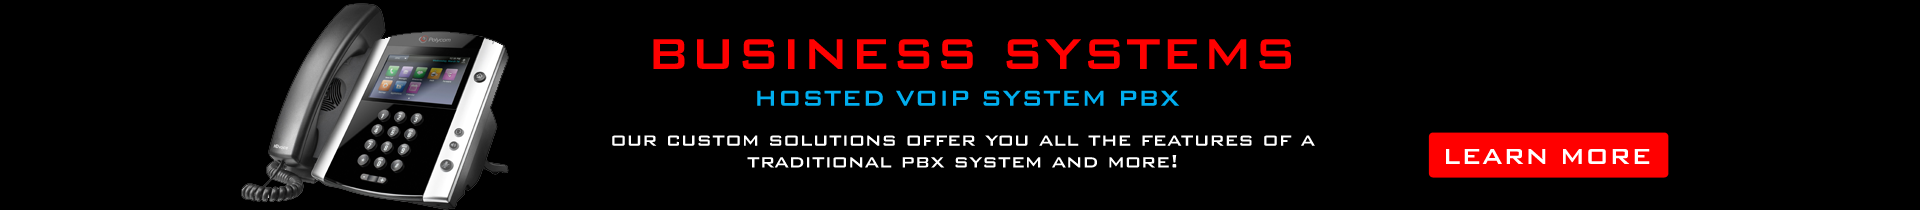 Business VoIP Systems